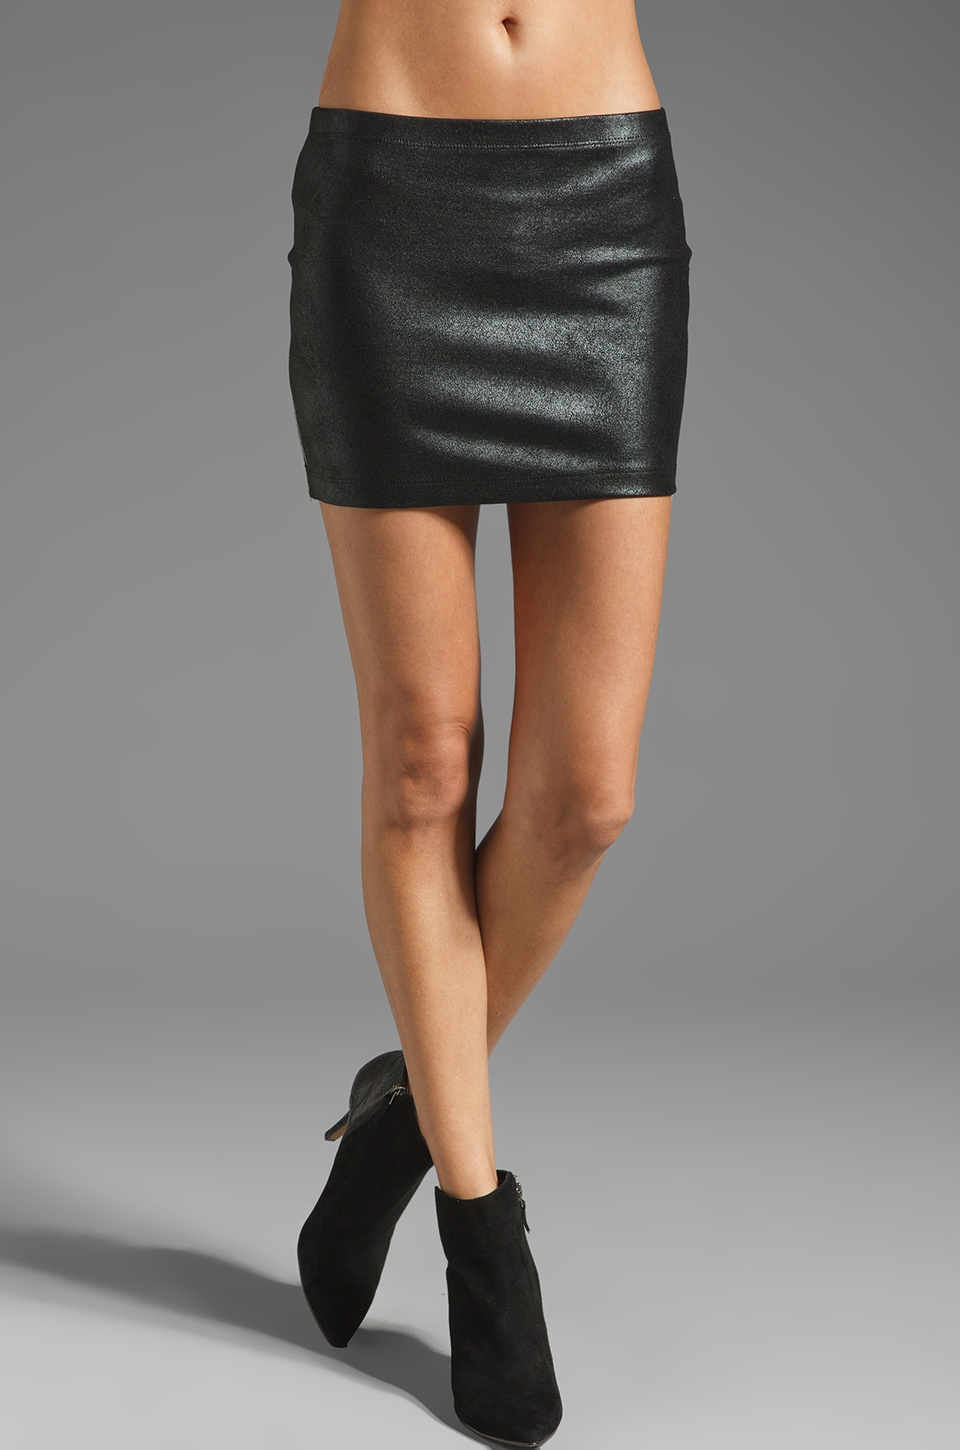 Generation Love Celine Leather Mini Skirt with Side Zipper in Black